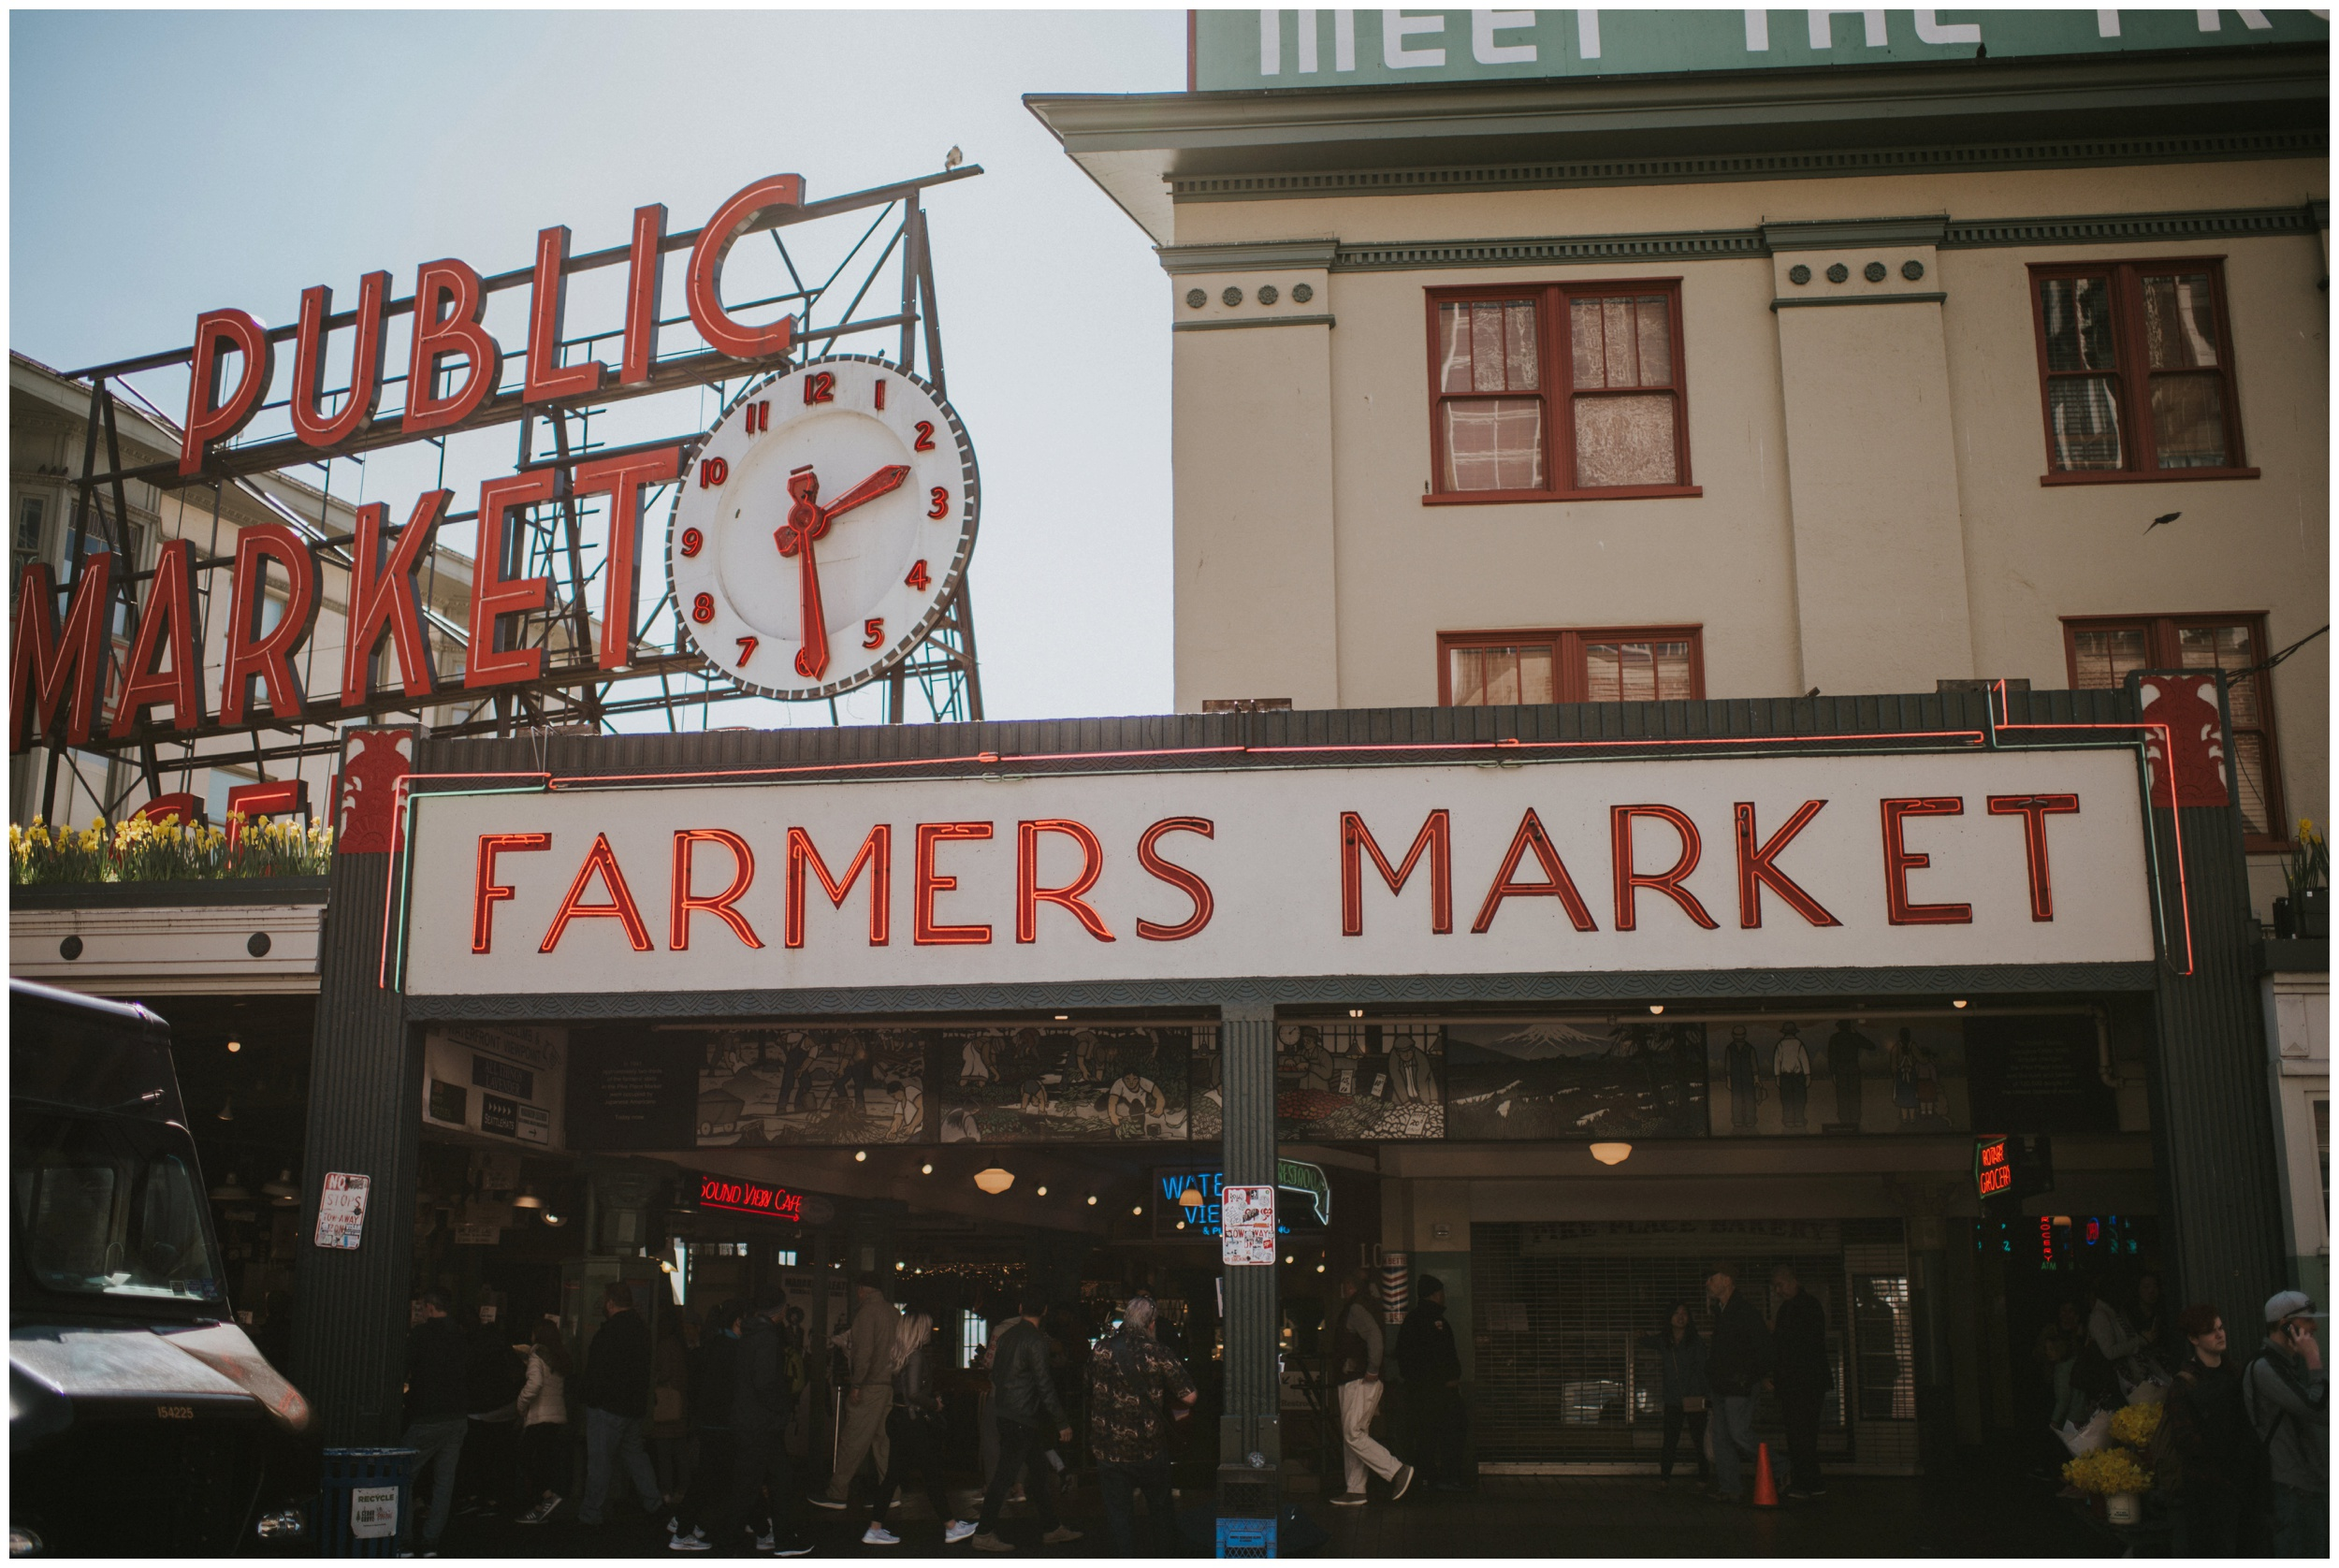 Farmers Market sign at Pike Place Market in Seattle Washington | Seattle Engagement Photographer www.riversandroadsphotography.com